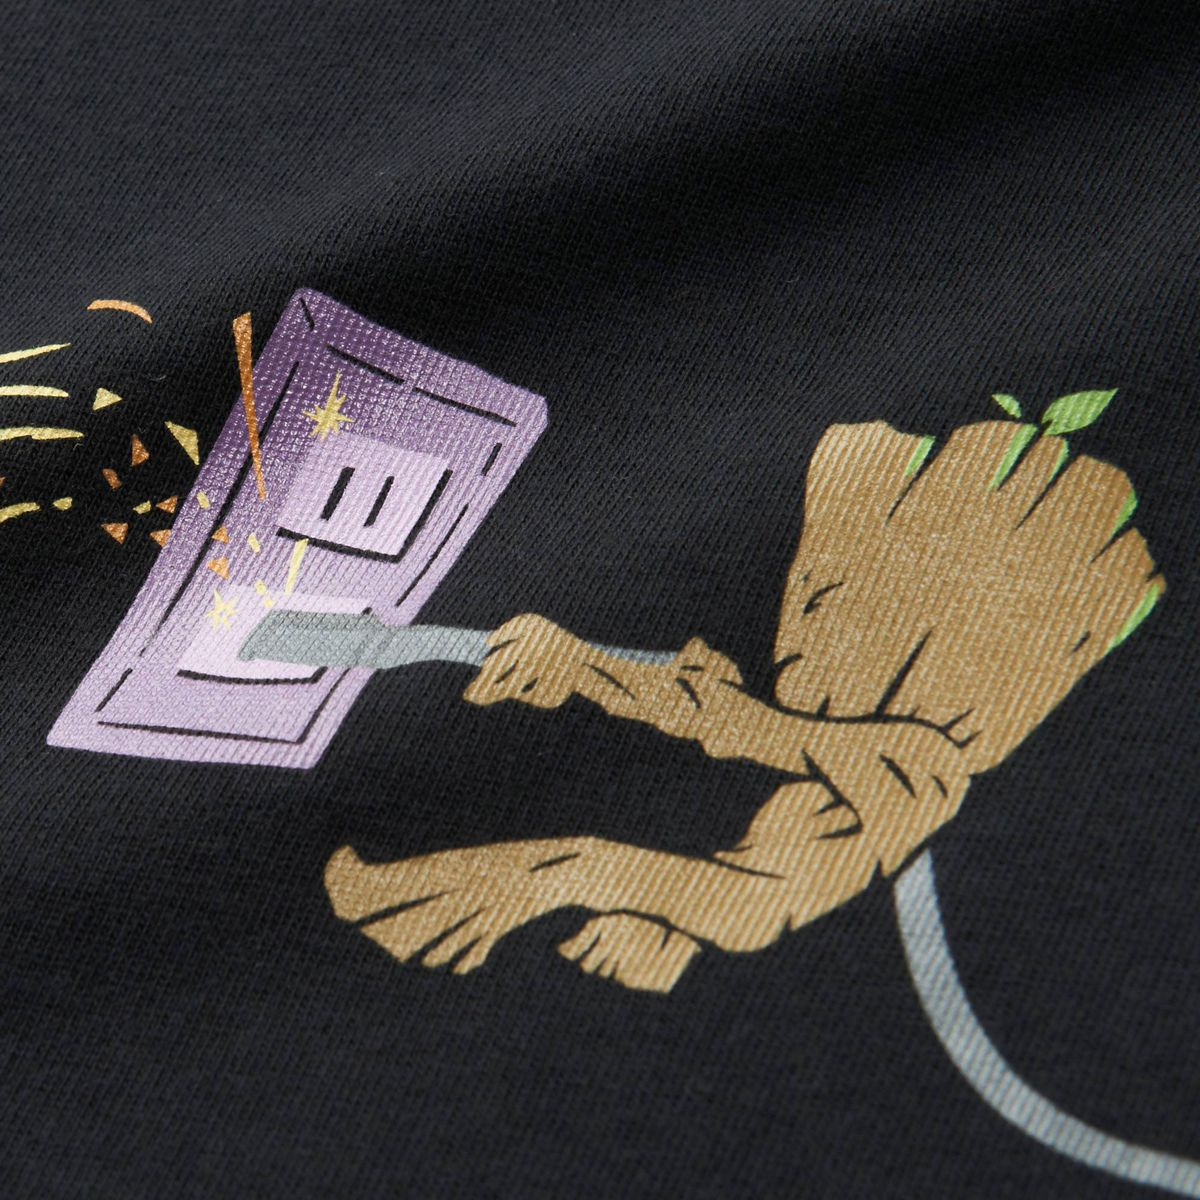 Uniqlo UTGP 2018 Guardians of the Galaxy T-shirt - close-up of Groot on back